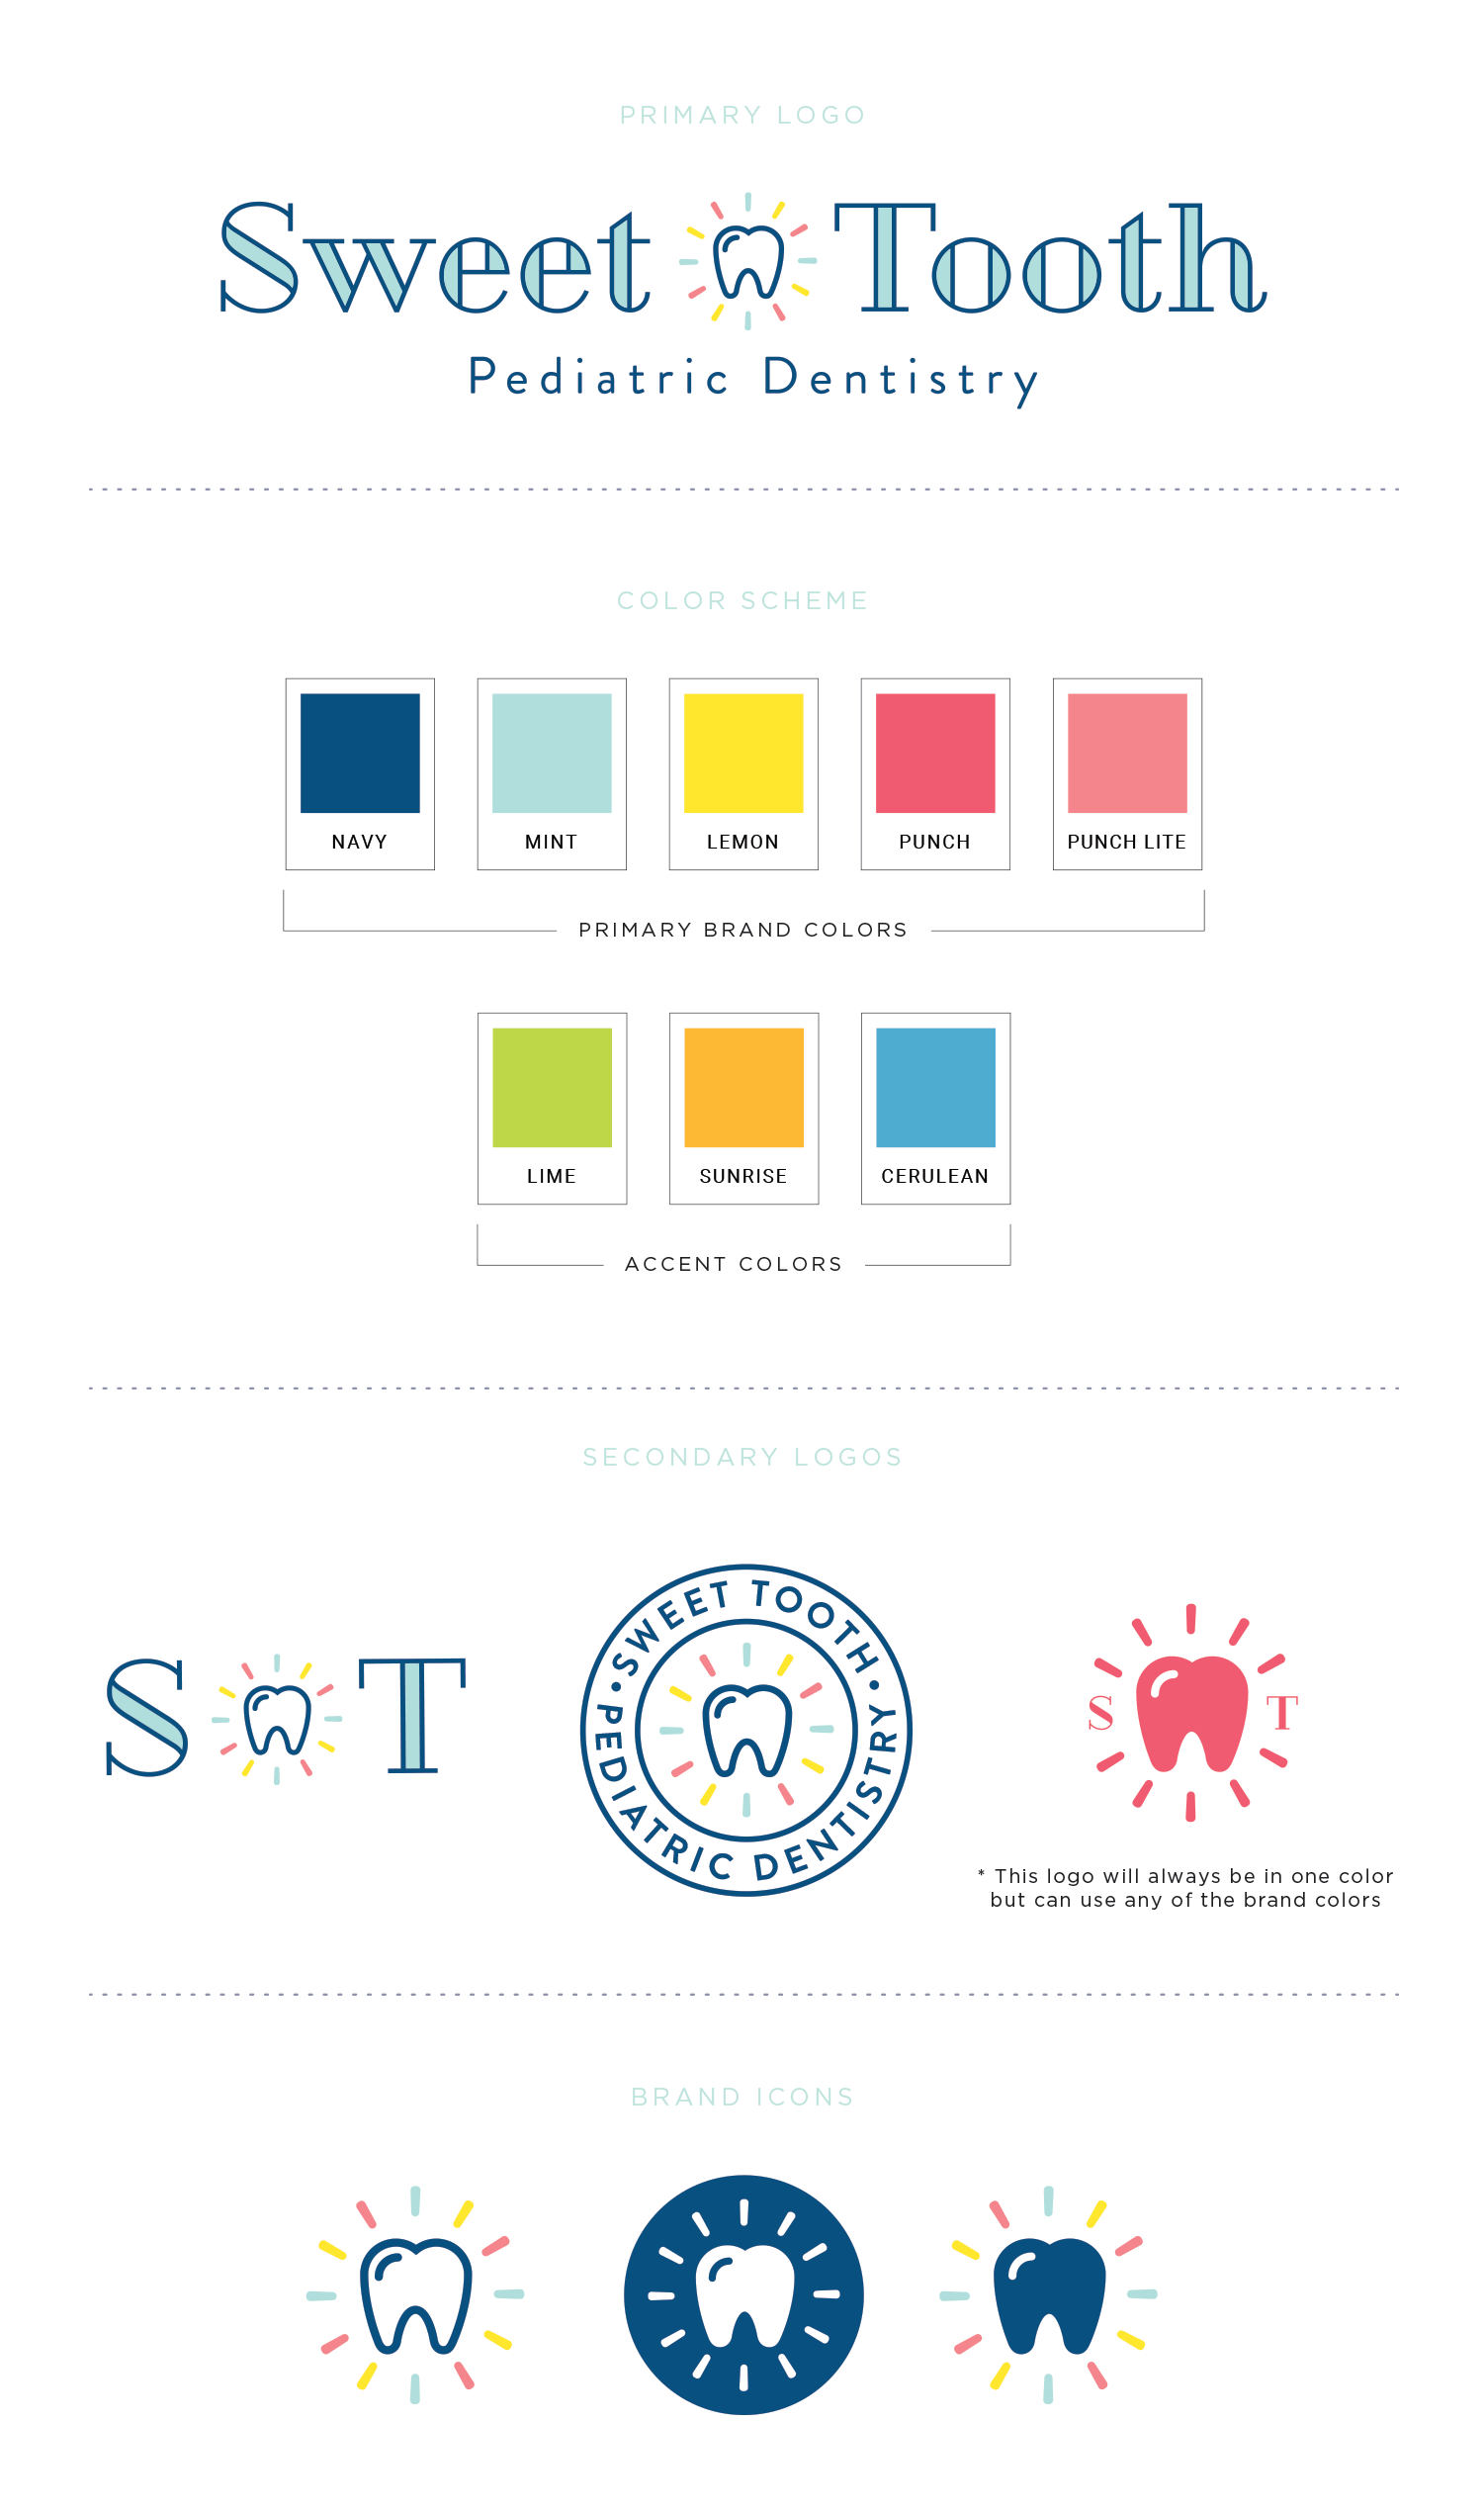 Sweet Tooth Pediatric Dentistry brand design